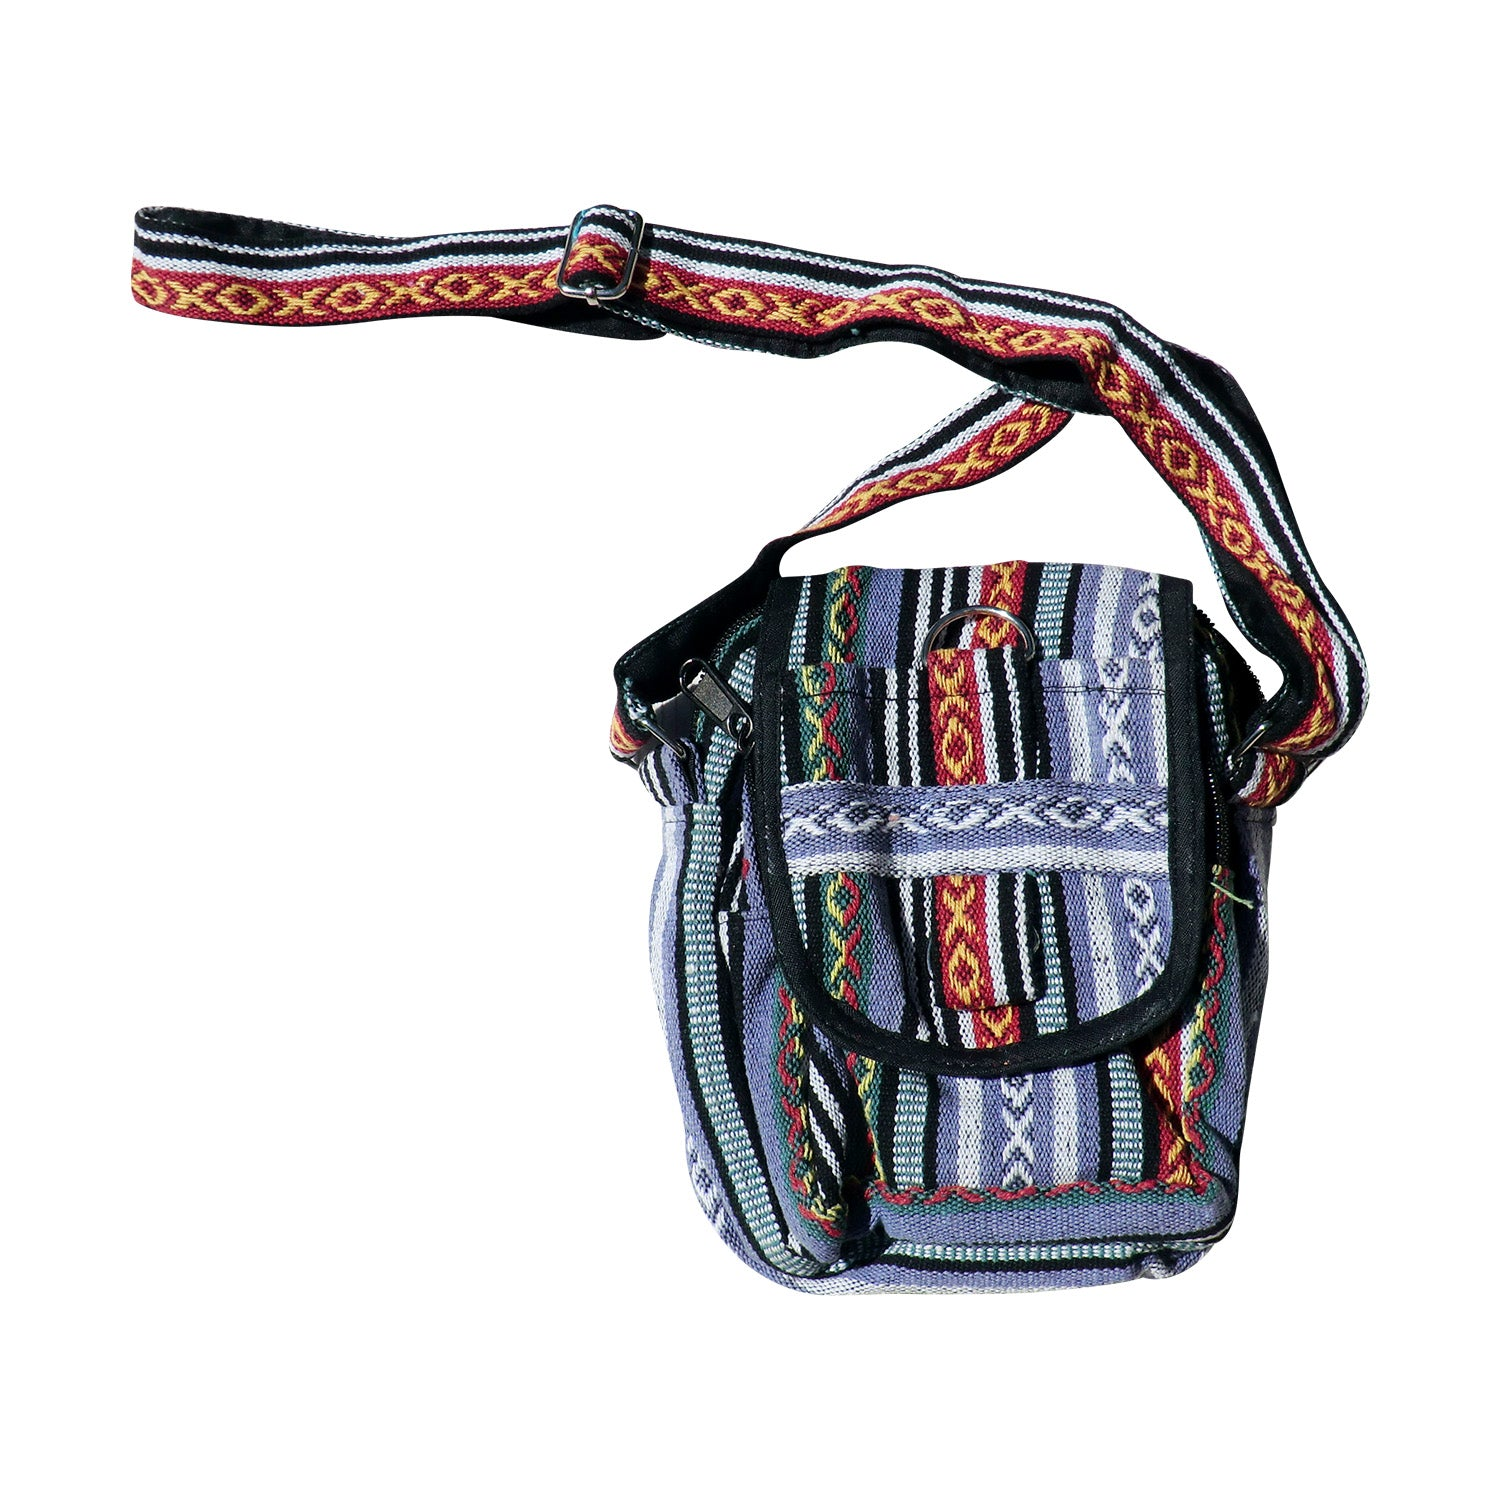 Small Shoulder Bag - Matico